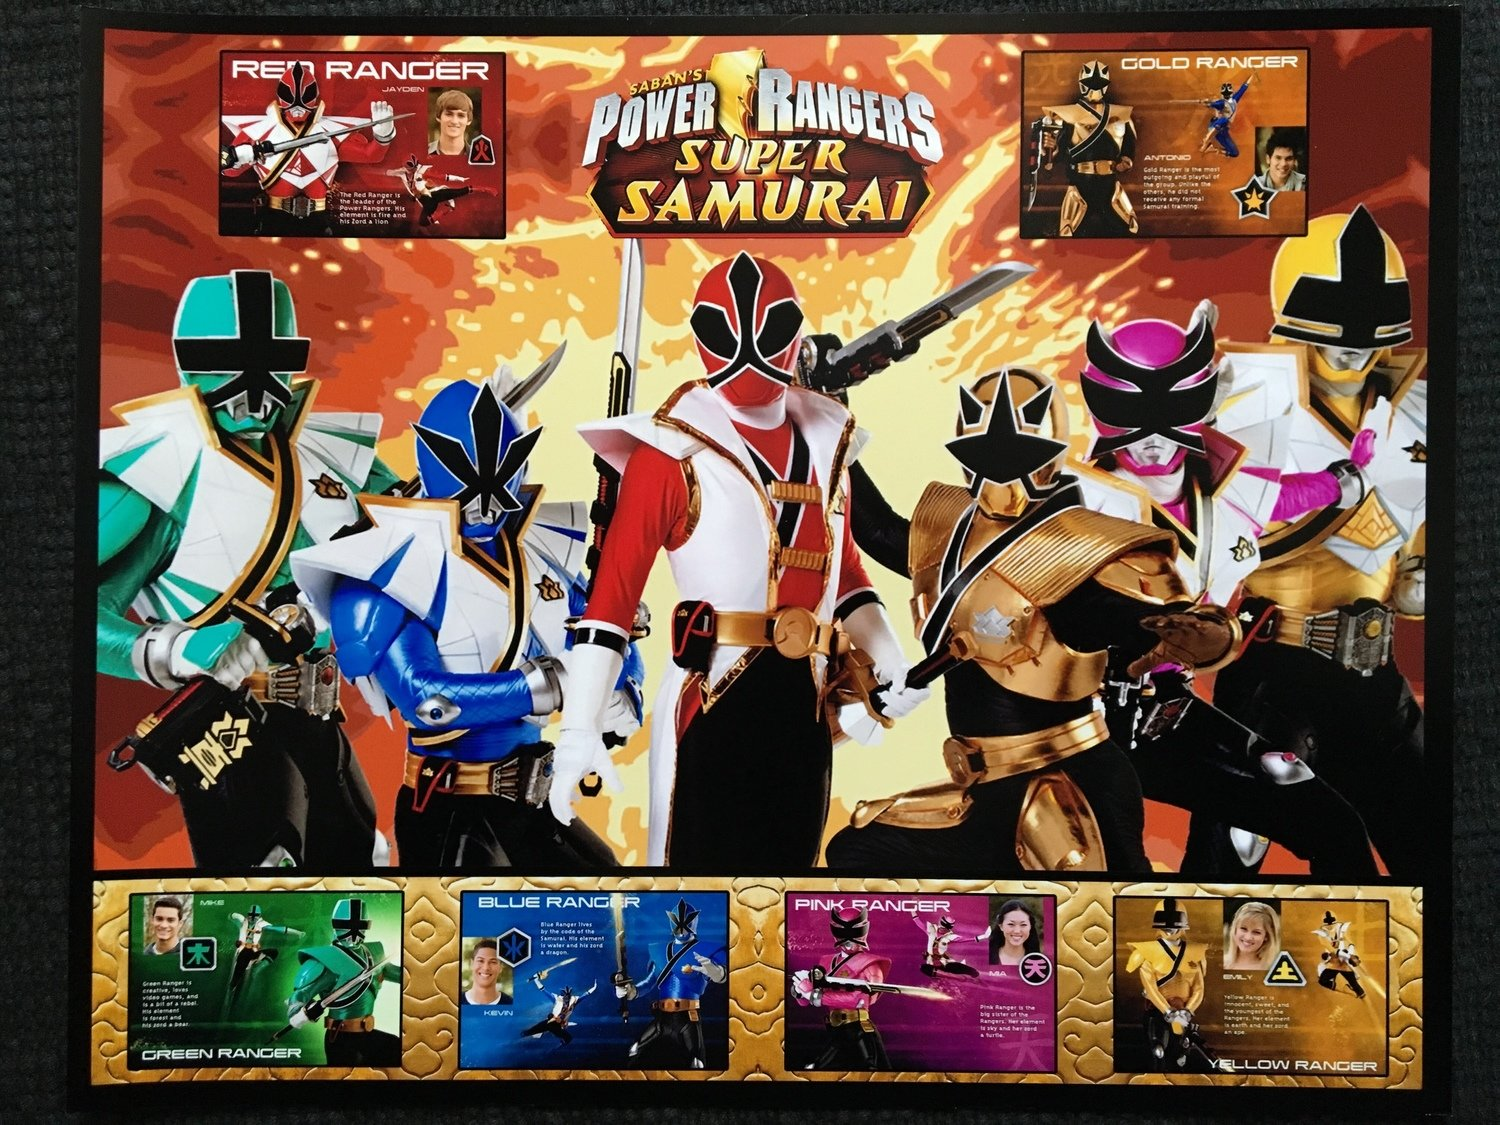 Signed (only by Steven) Super Samurai Power Rangers Morphed 8x10